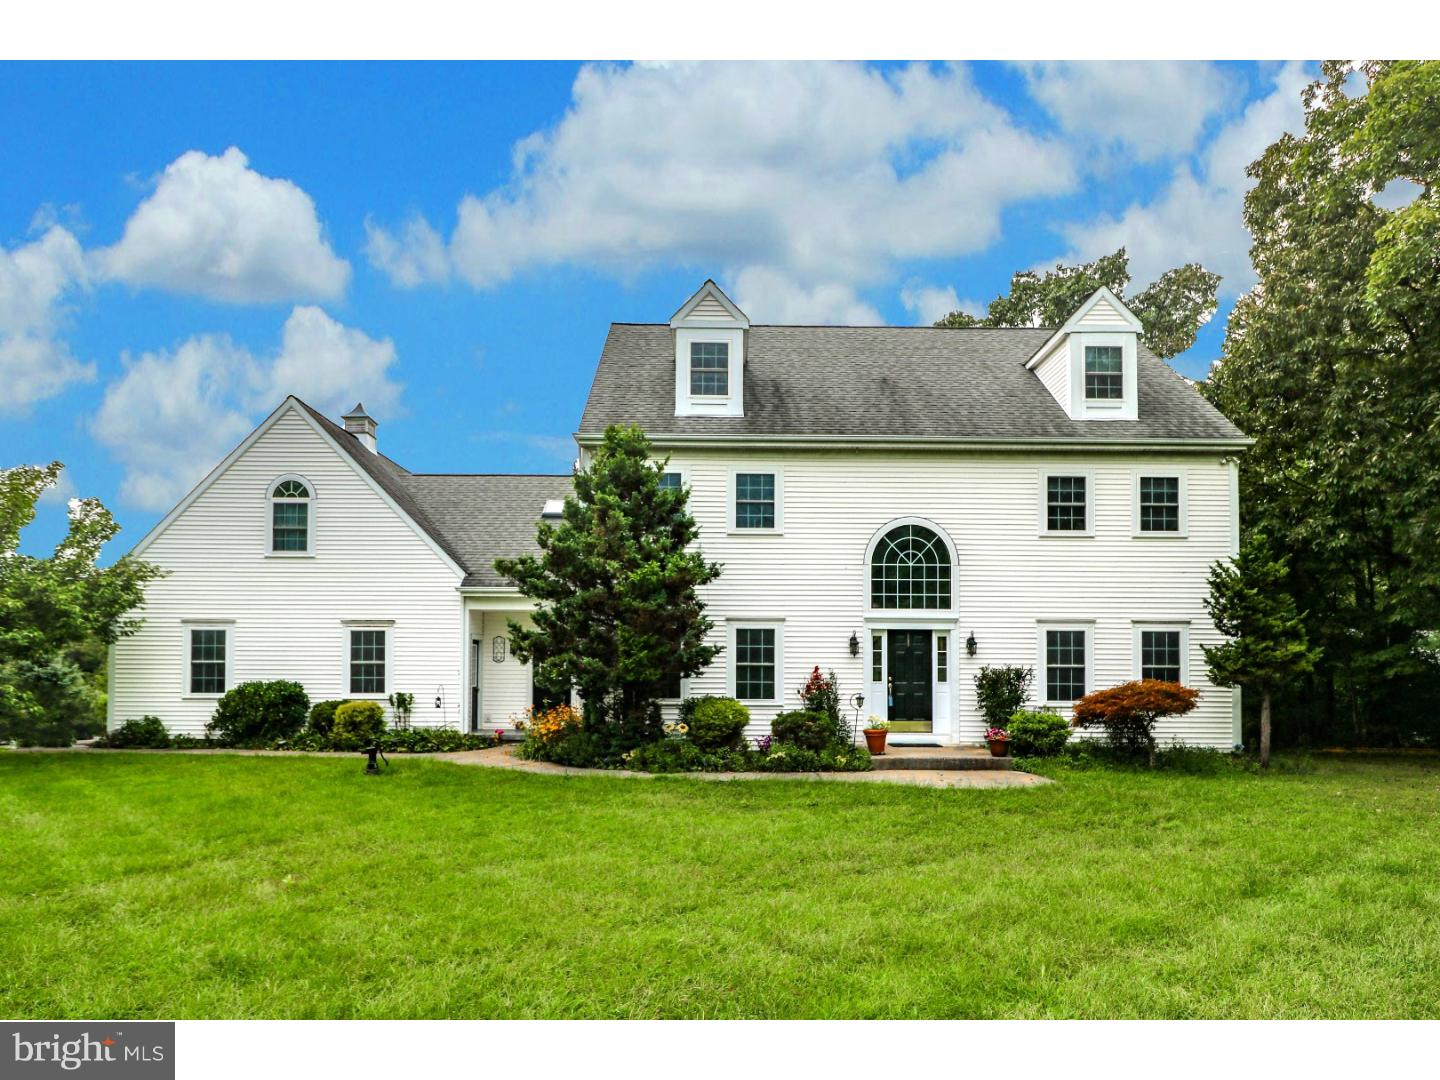 Single Family Home for Sale at 86 ALEXAUKEN CREEK Road Lambertville, New Jersey 08530 United StatesMunicipality: West Amwell Township